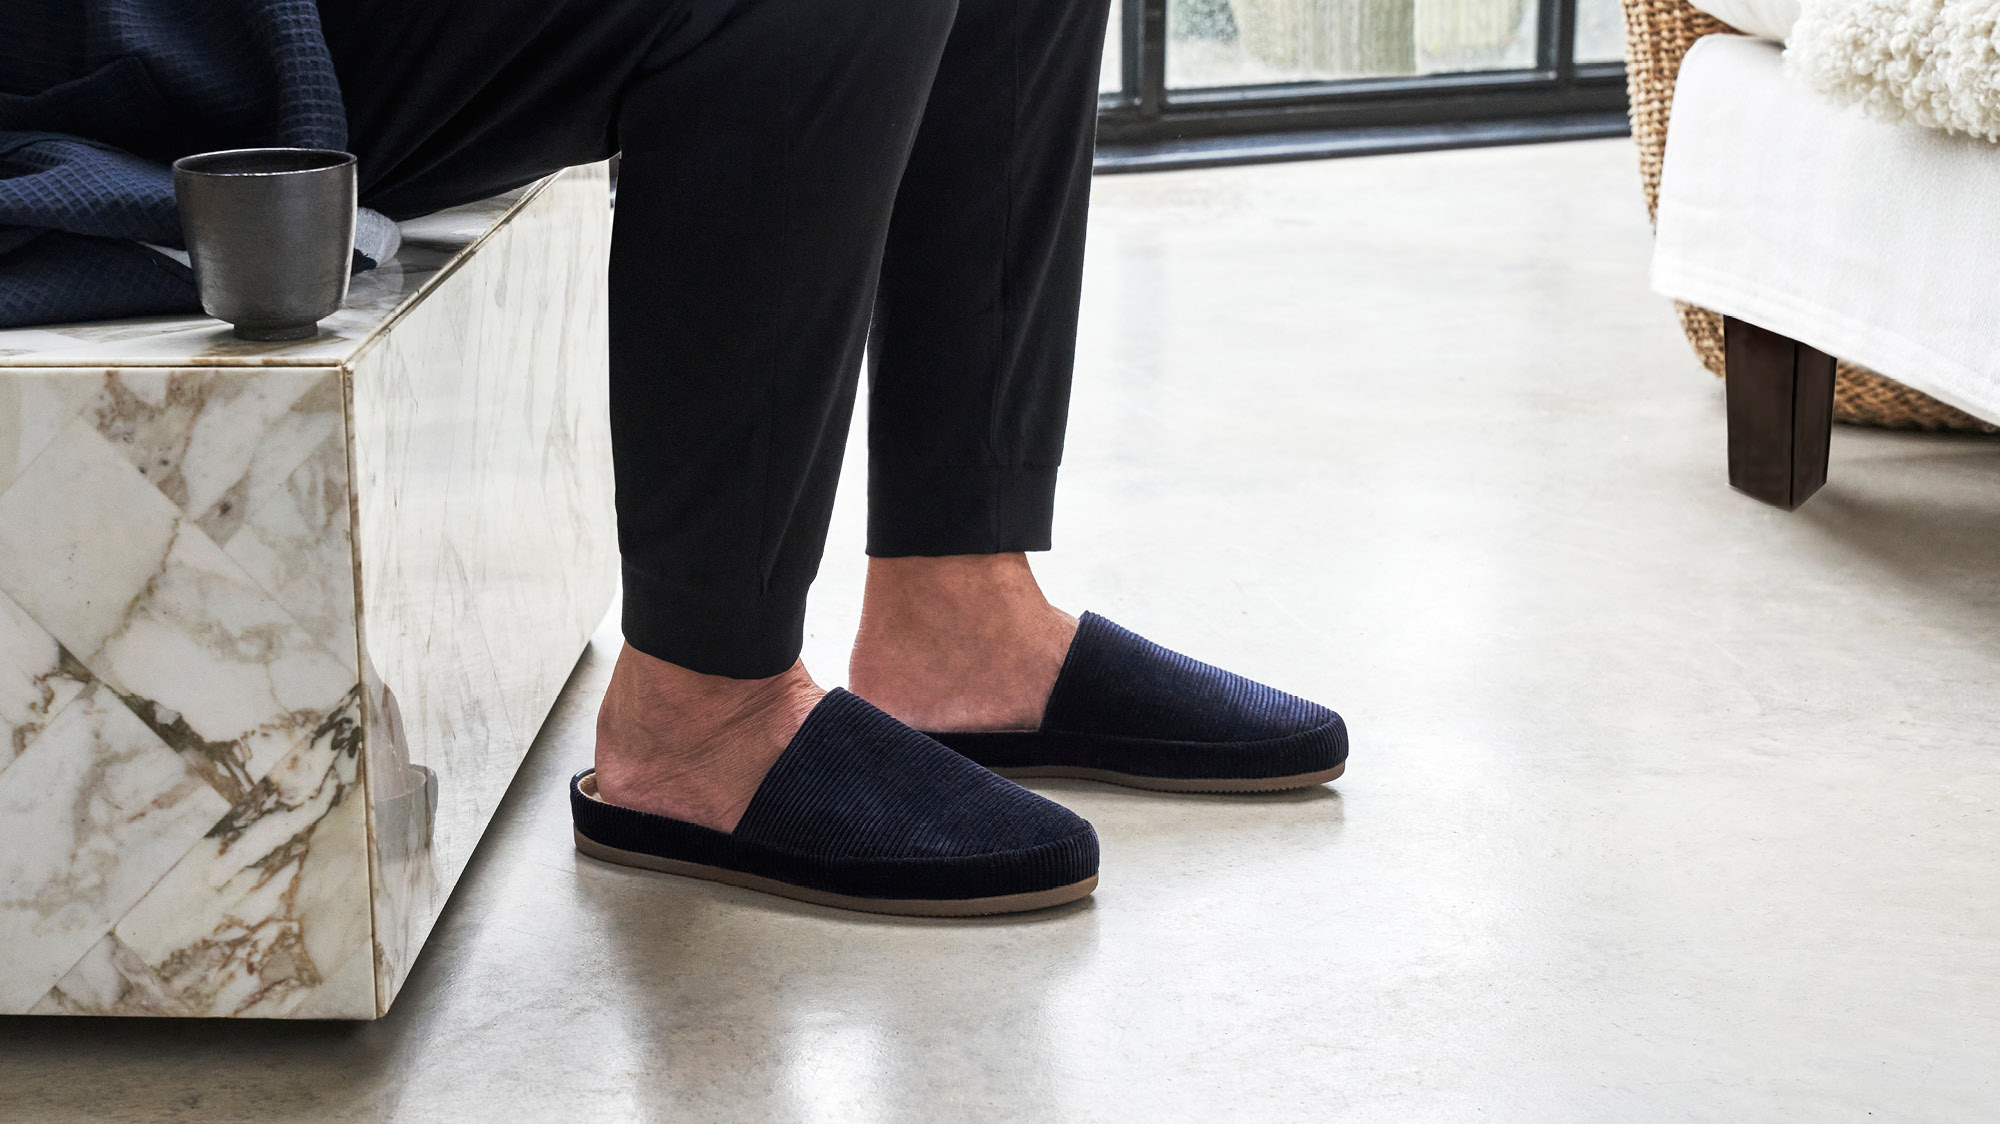 Slippers for Men - At Home Comfort and Style